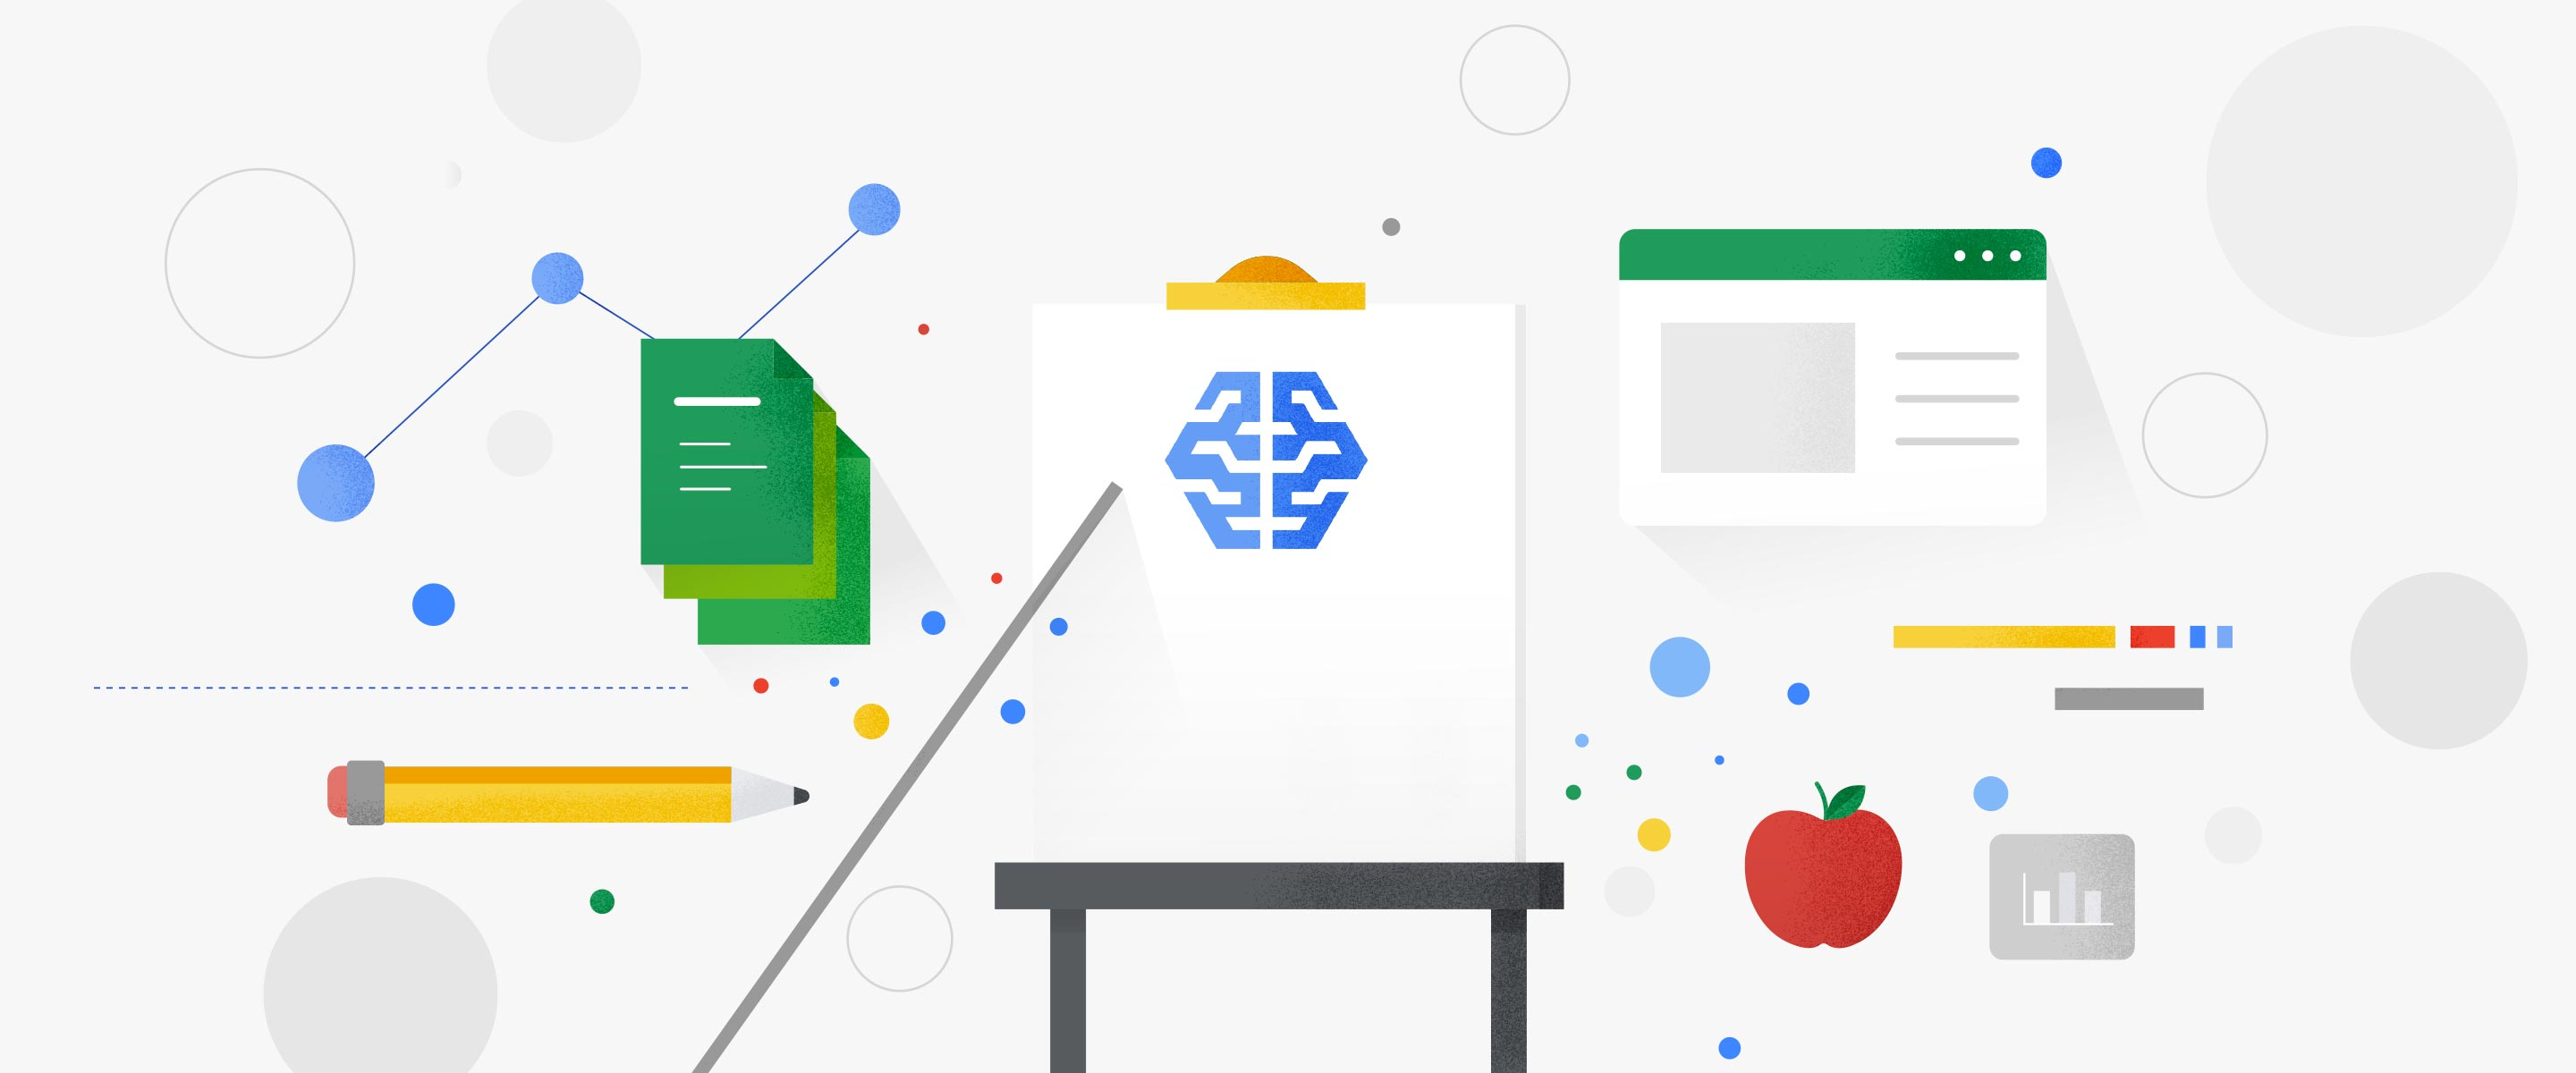 Free AI and machine learning training for fraud detection, chatbots, and more